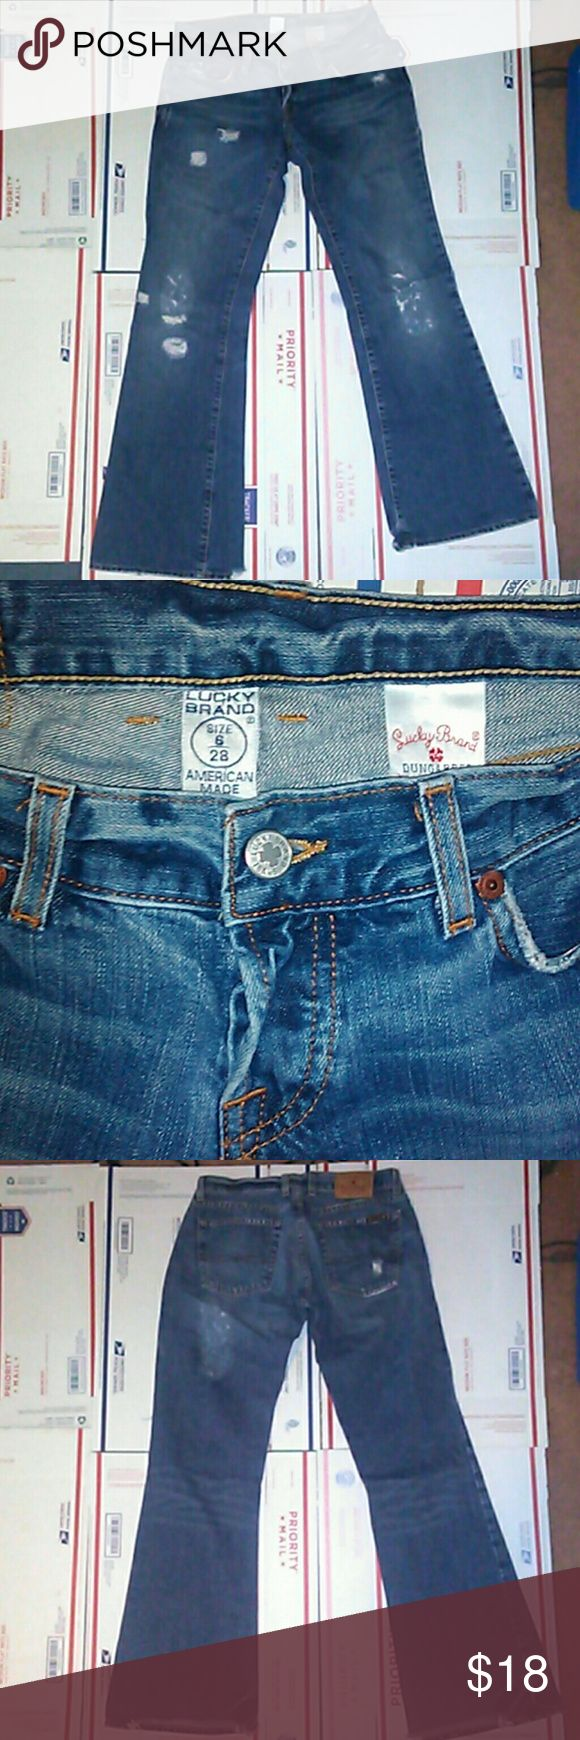 Lucky brand womens bootcut jeans-28w 30L Lucky brand women's bootcut jeans size 28 waste 30 length , worn to a comfortable relaxed fit, distressed with holes and Freys, tearing around the back, still alot of life left in them! Lucky Brand Jeans Boot Cut